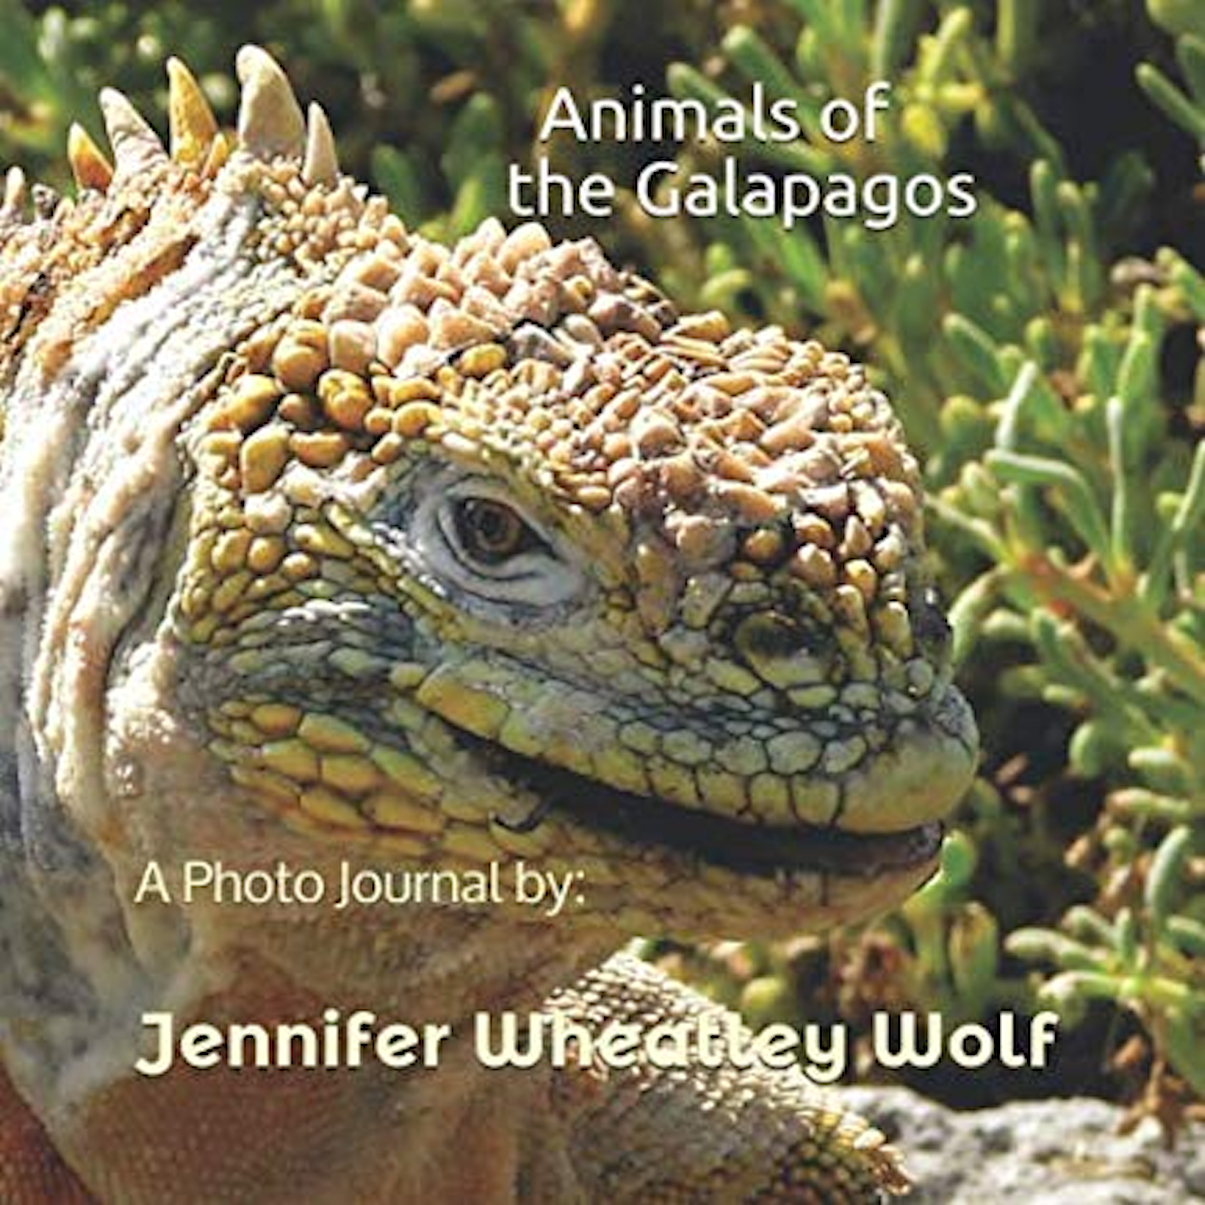 Animals-of-the-Galapagos-A-Photo-Journal-by-Jennifer-A-Wheatley-Wolf